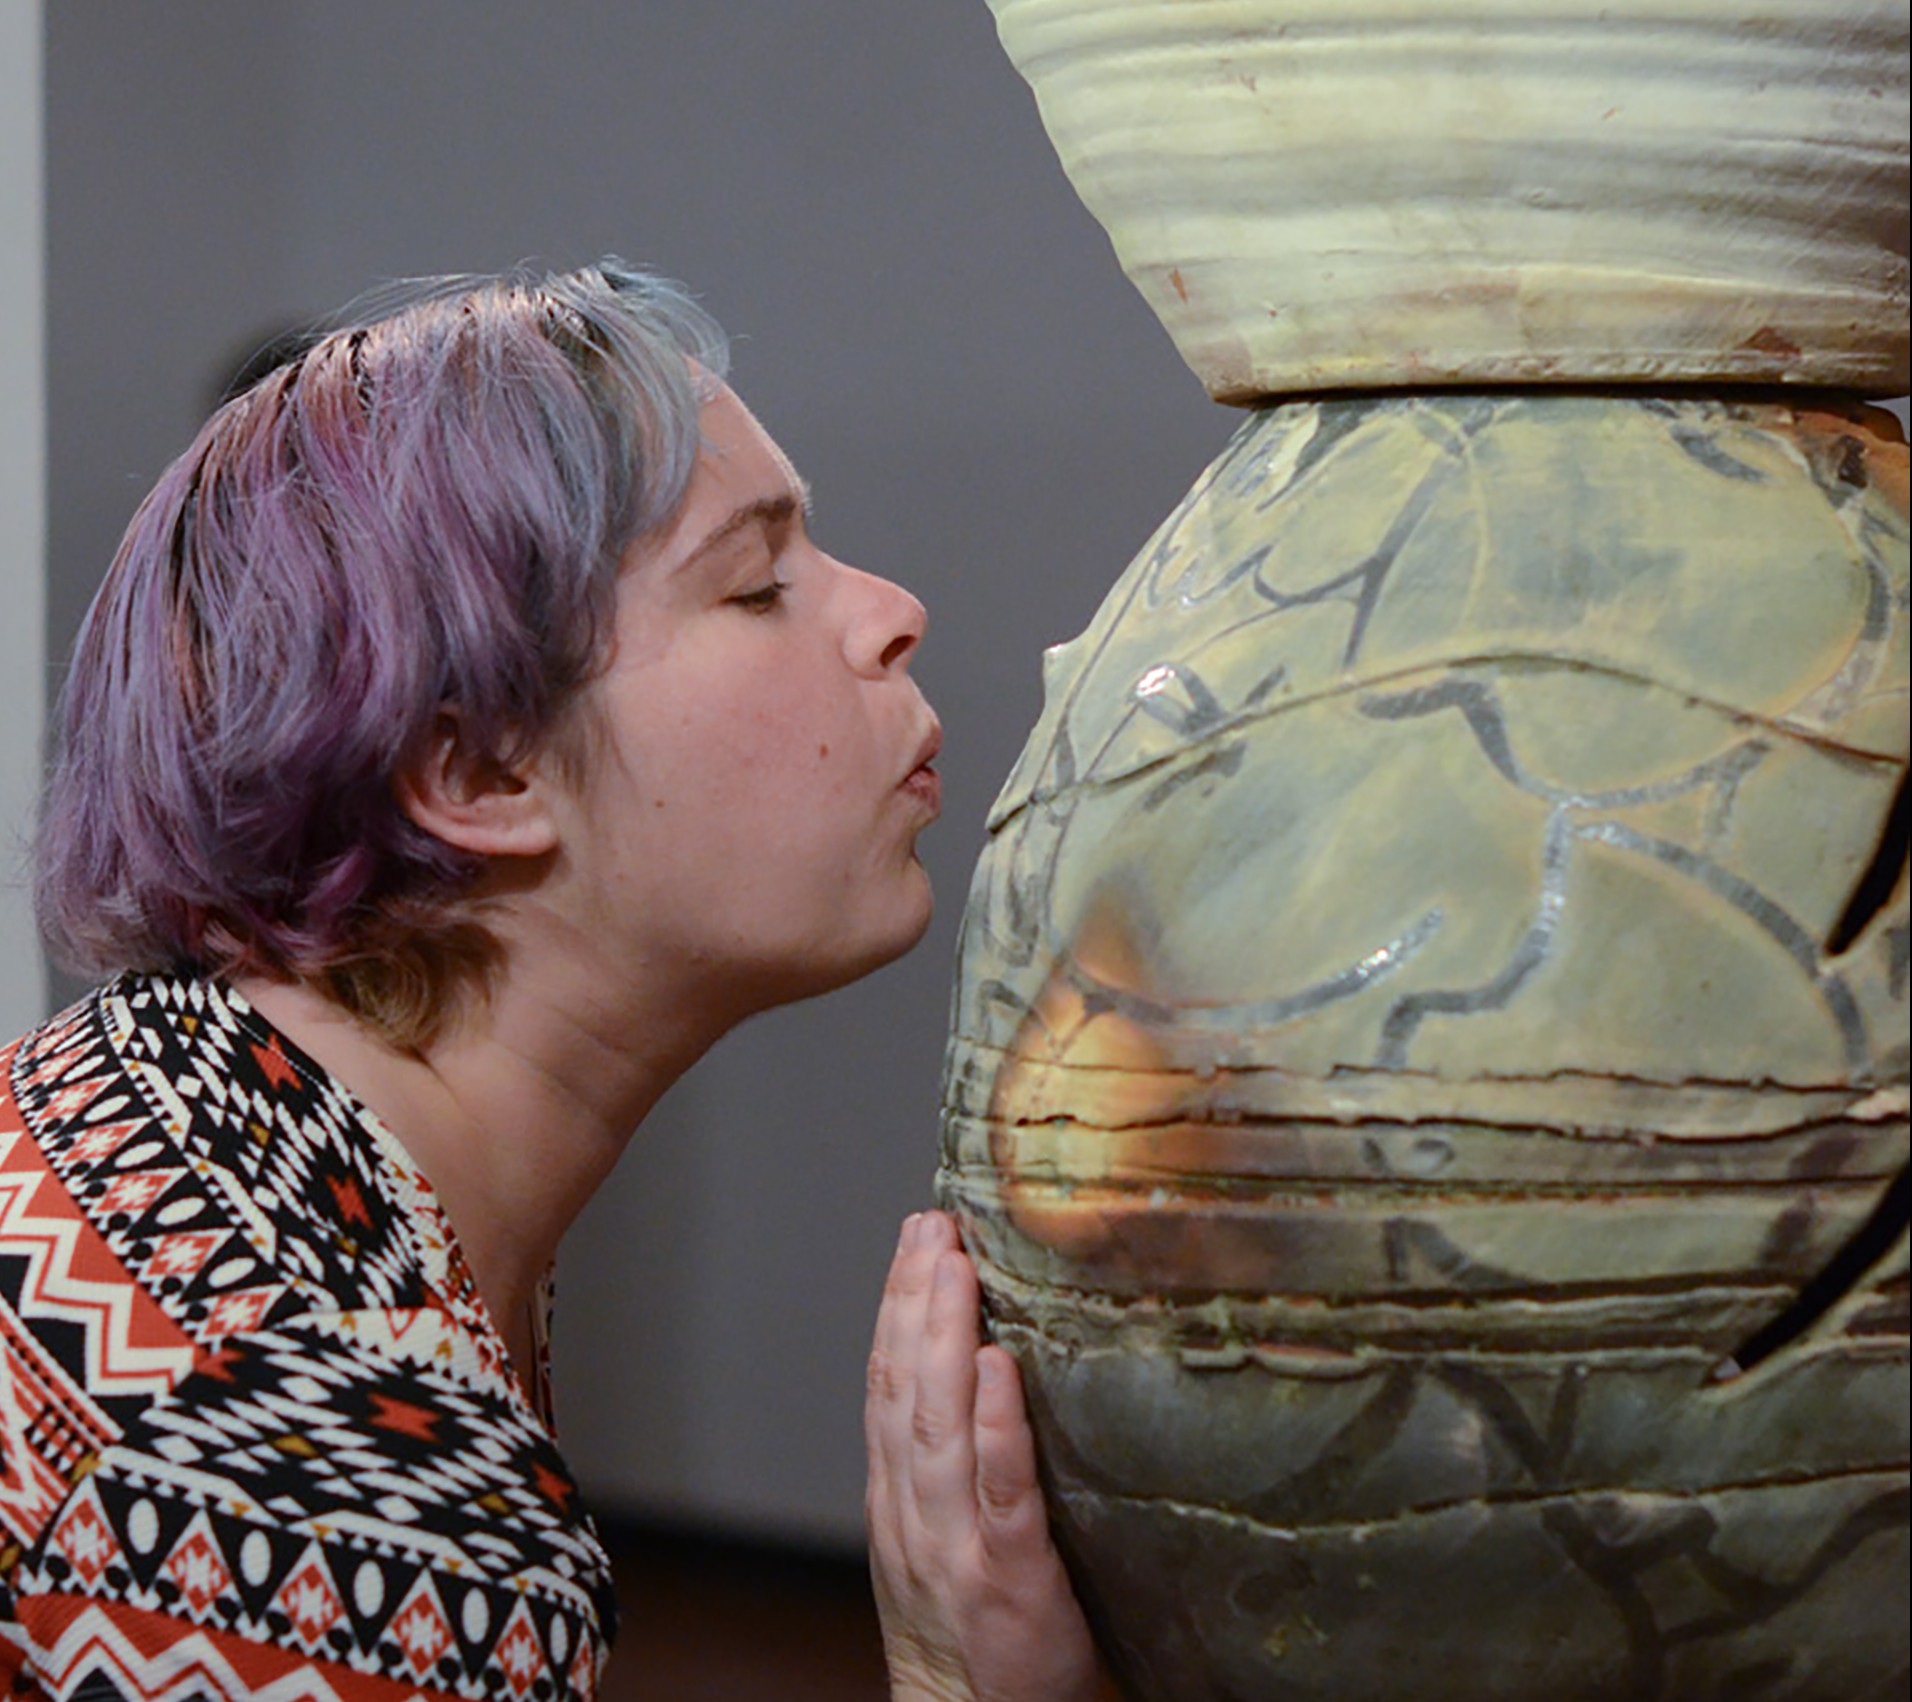 Gallery attendee Michelle Hauswirth blows into ceramic artist Jessica Rae Thompson's sculpture thereby creating a whistle sound during the Ceramics Biennial at the Palomar College Boehm Gallery on Feb. 18. Tracy Grassel/The Telescope